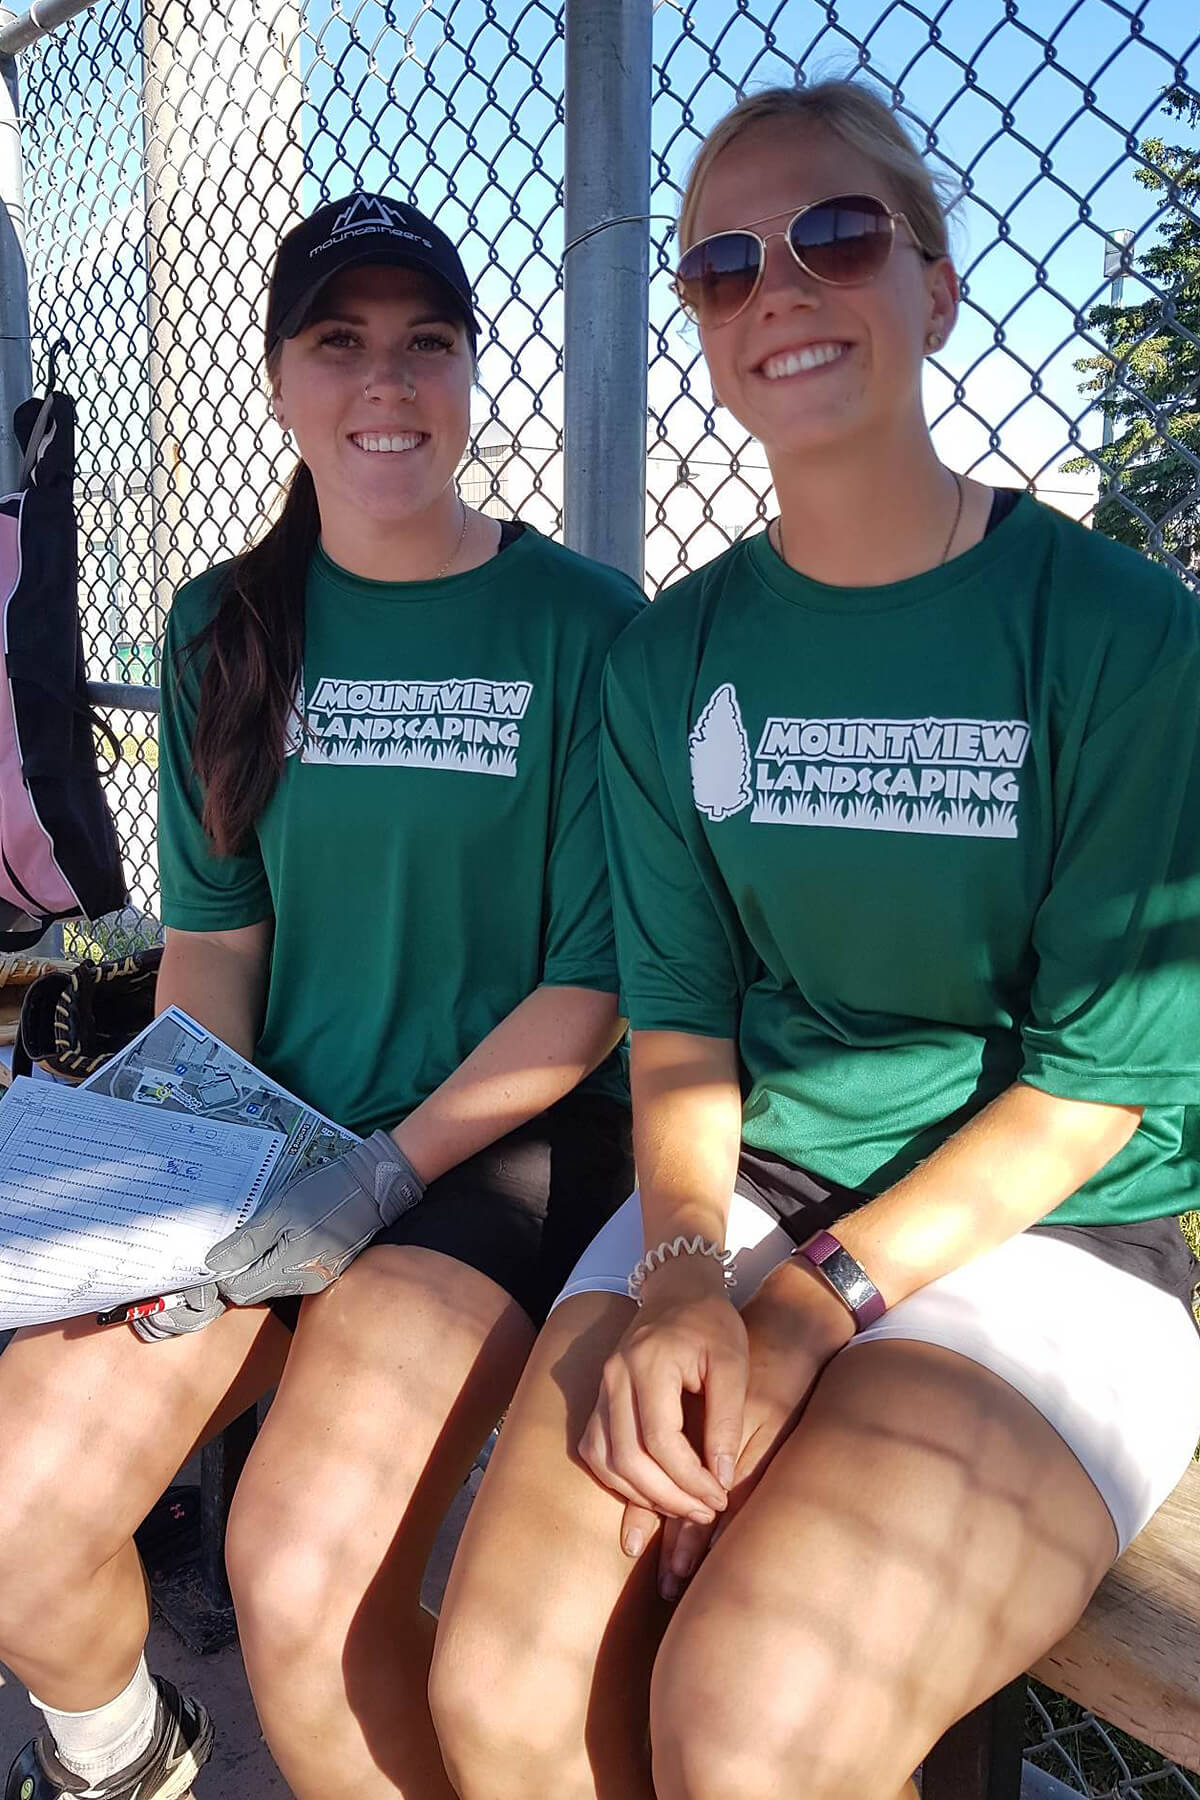 Two happy girls sitting on baseball dugout bench